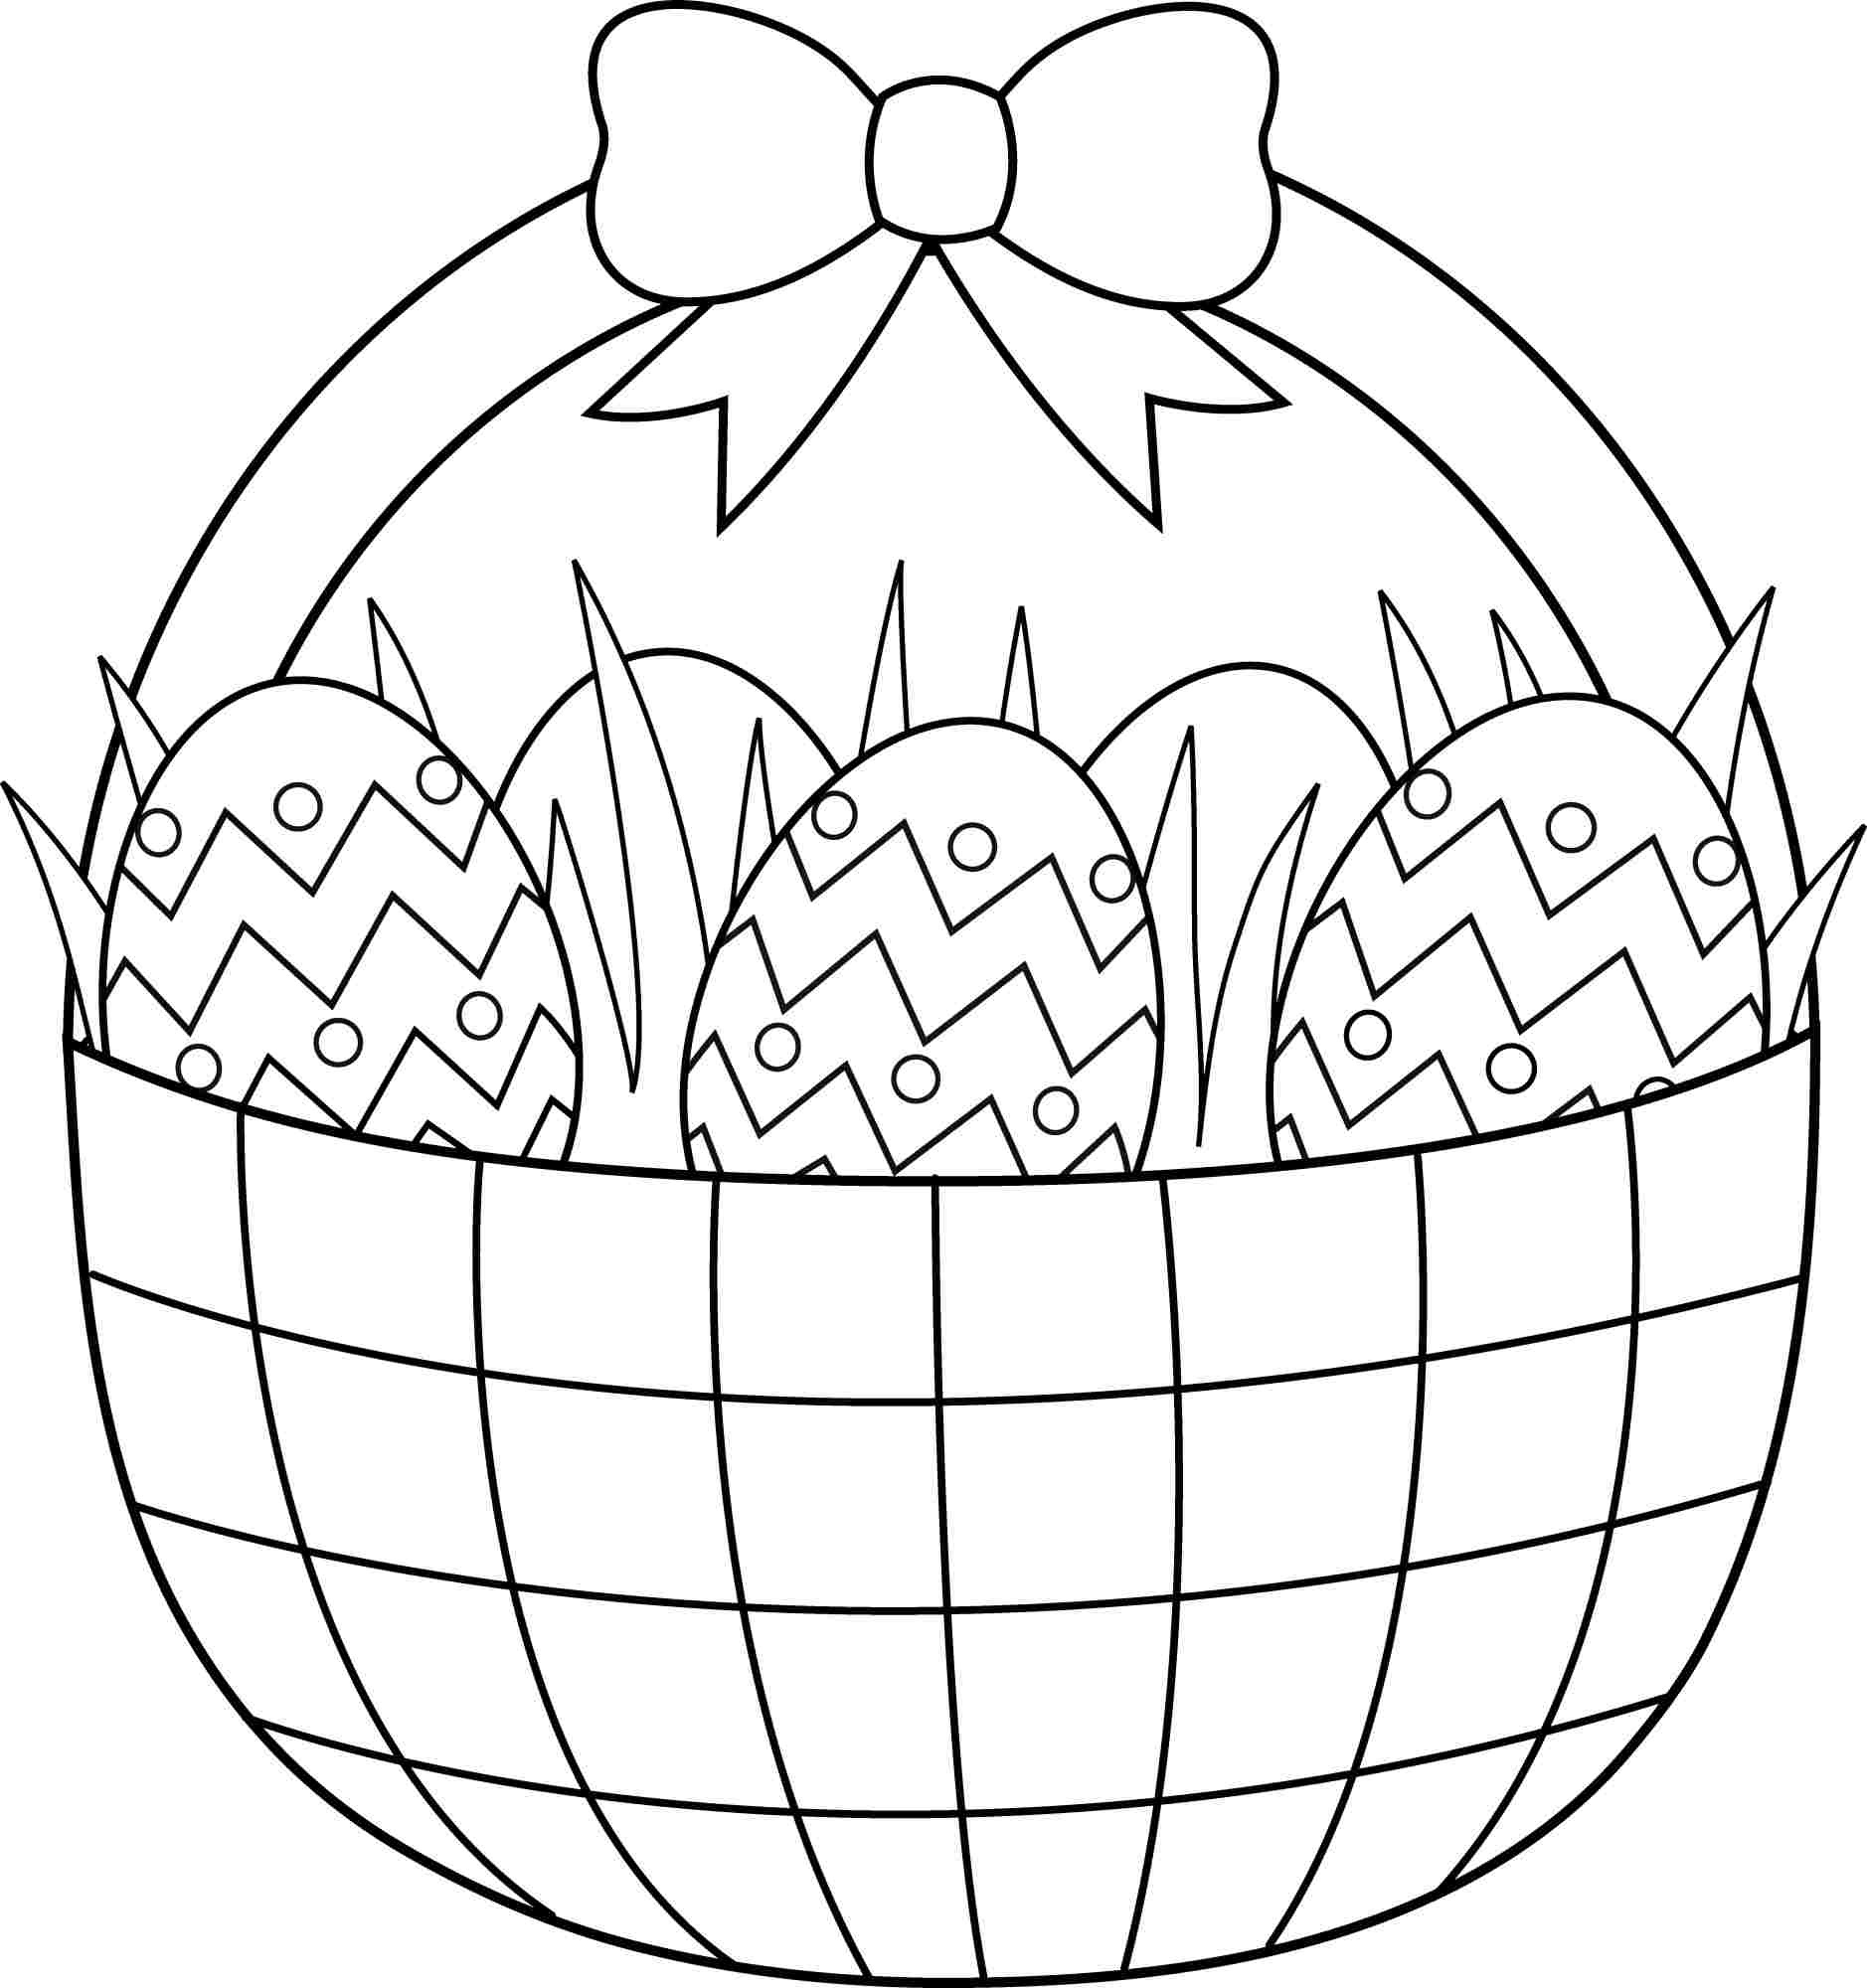 Printable Easter Coloring Pages Free Easter Coloring Pages Printable - Free Printable Easter Pages